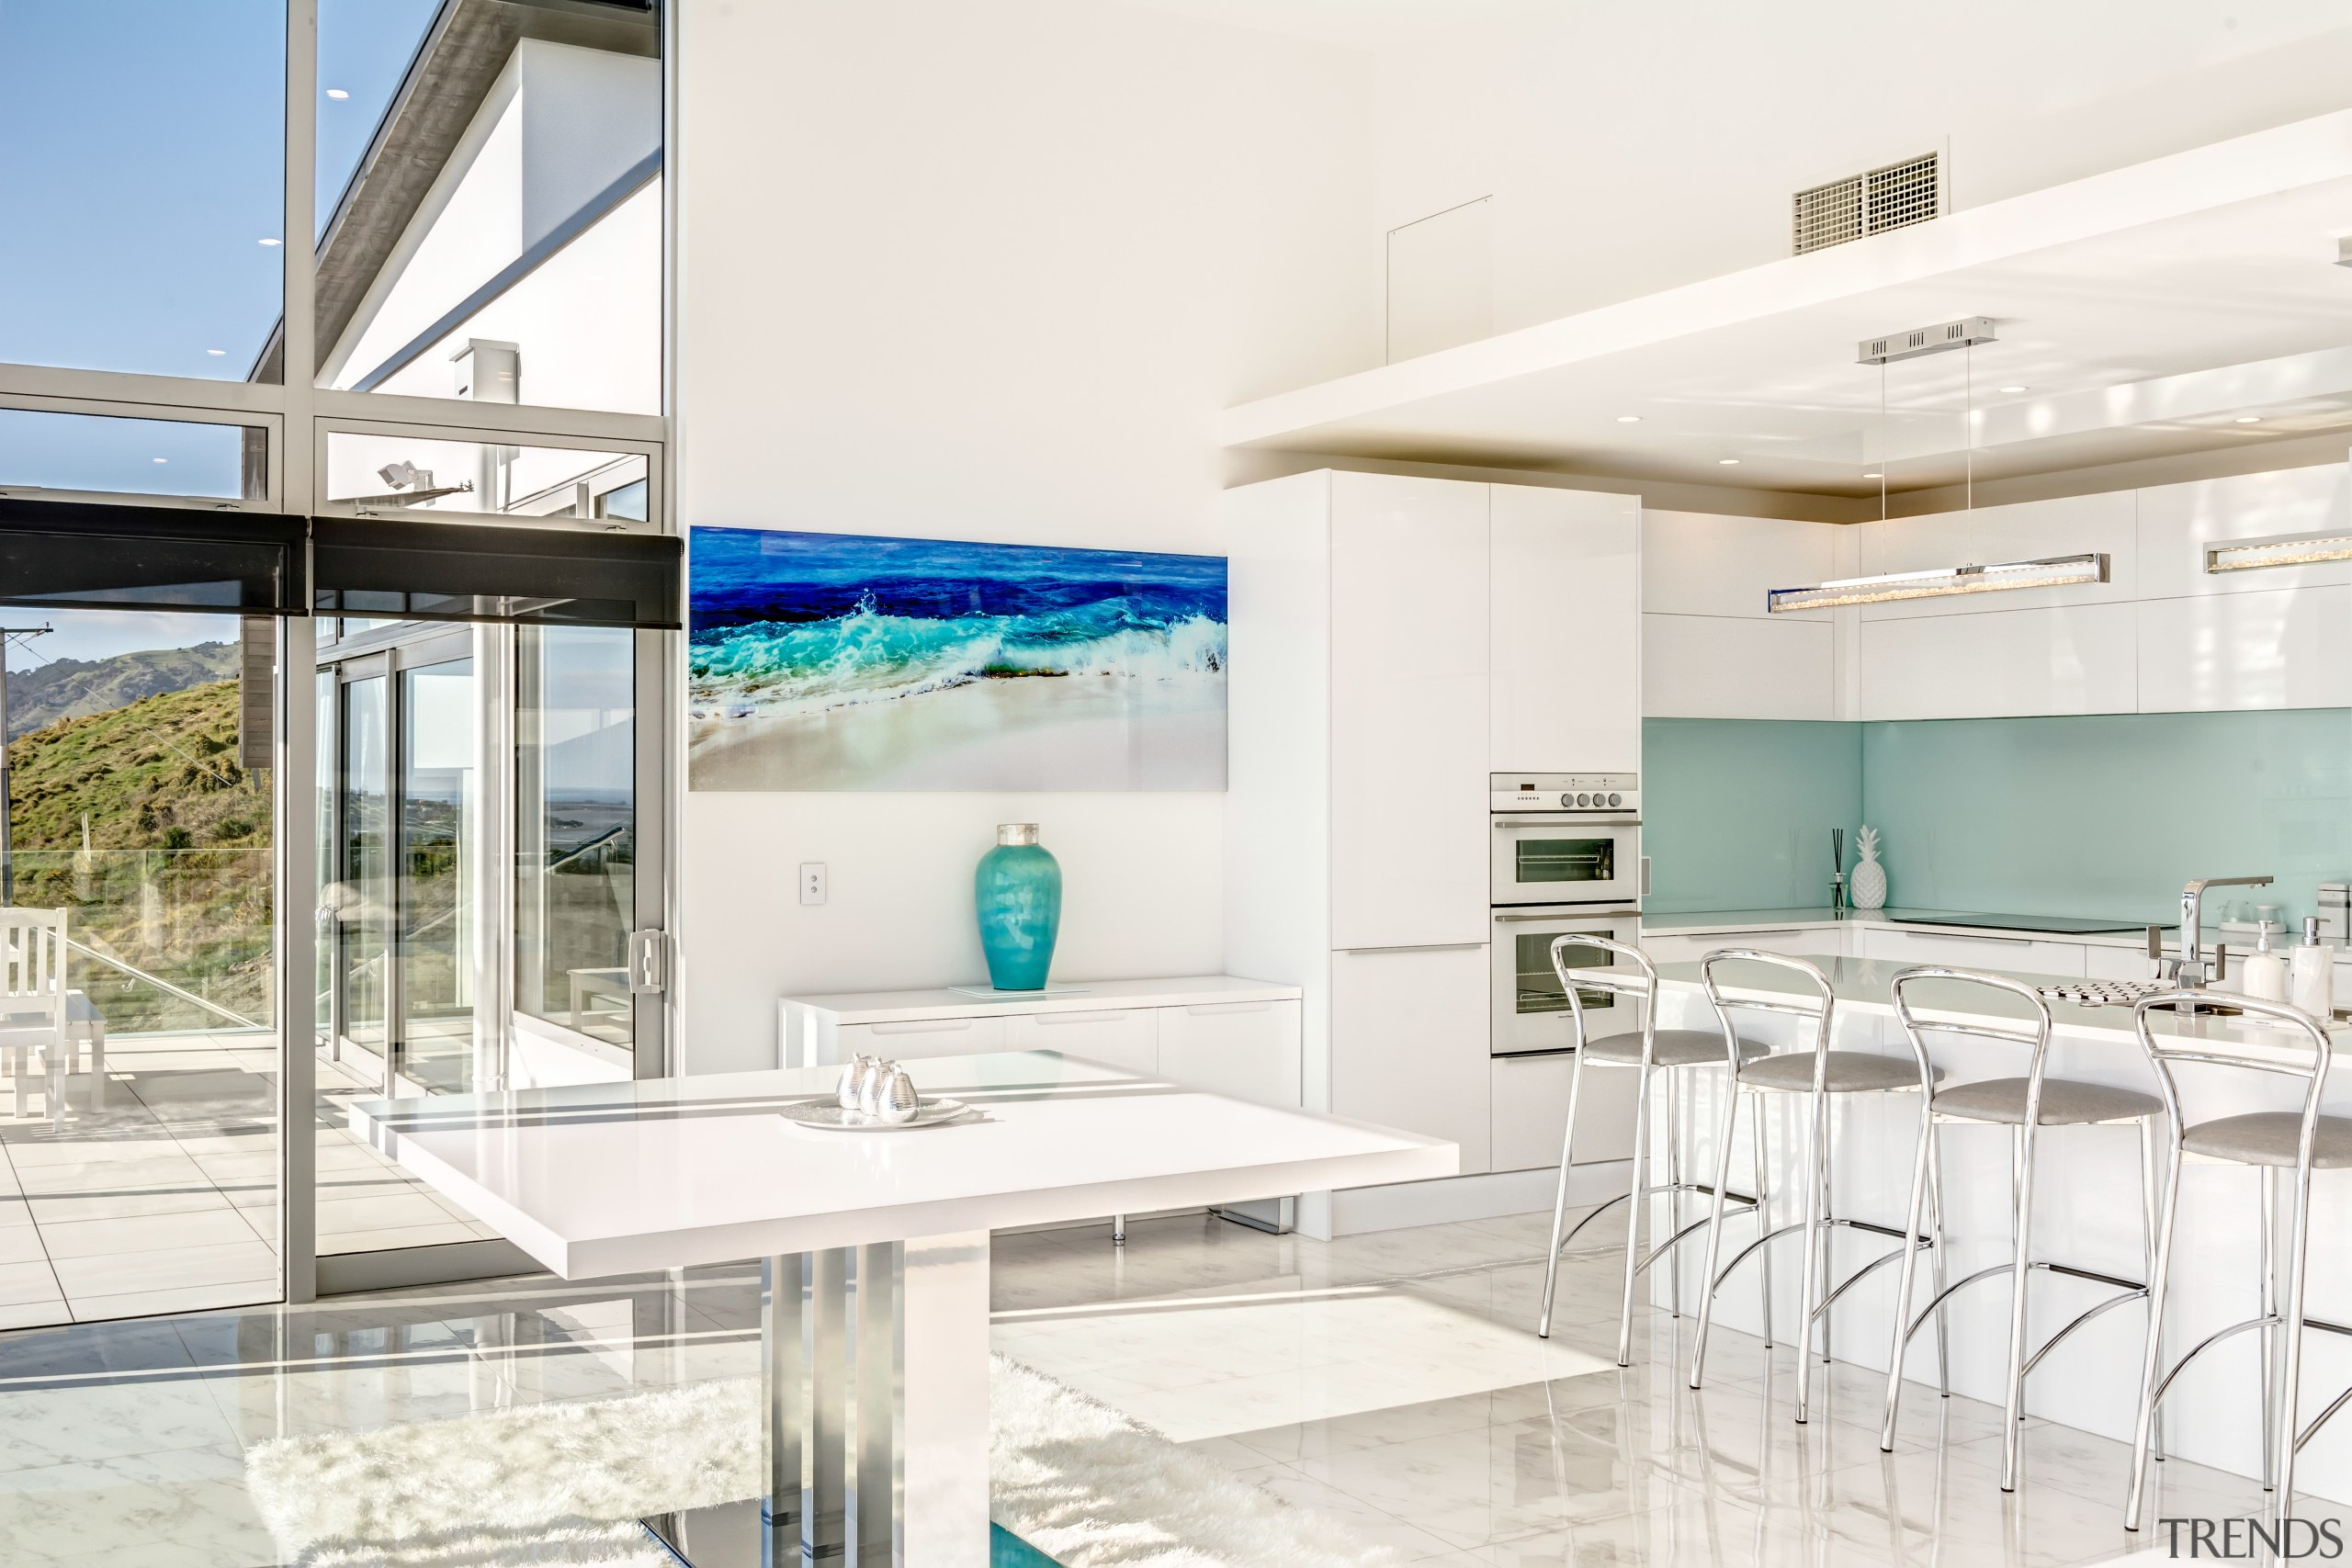 Glass and white surfaces predominate in this European-style architecture, house, interior design, real estate, white